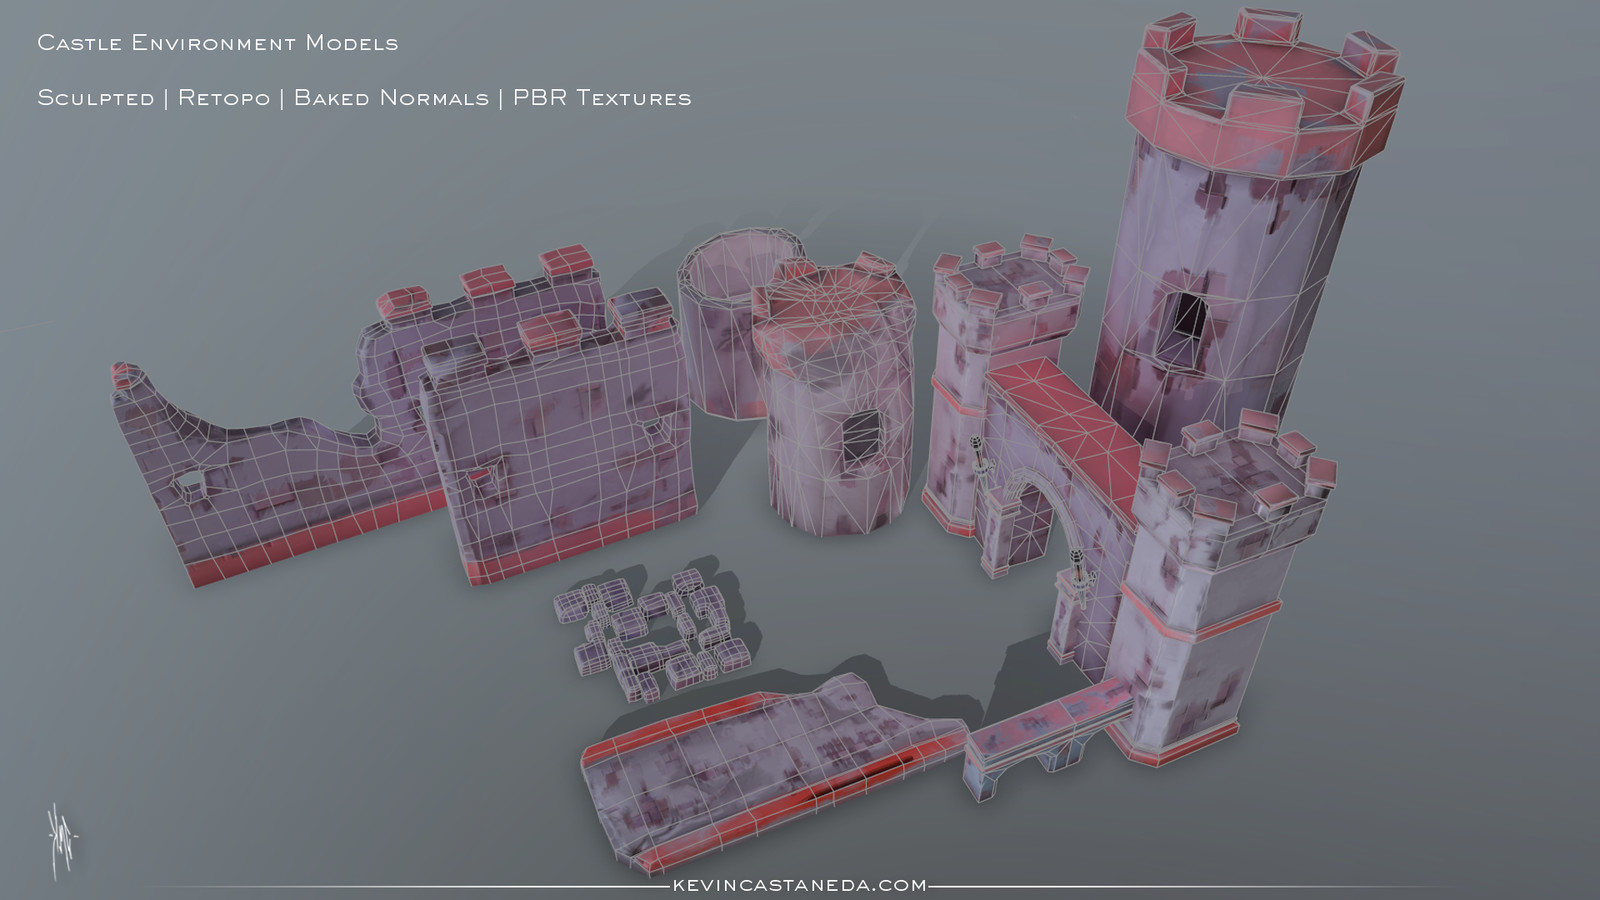 Wireframe of the castle environment models.